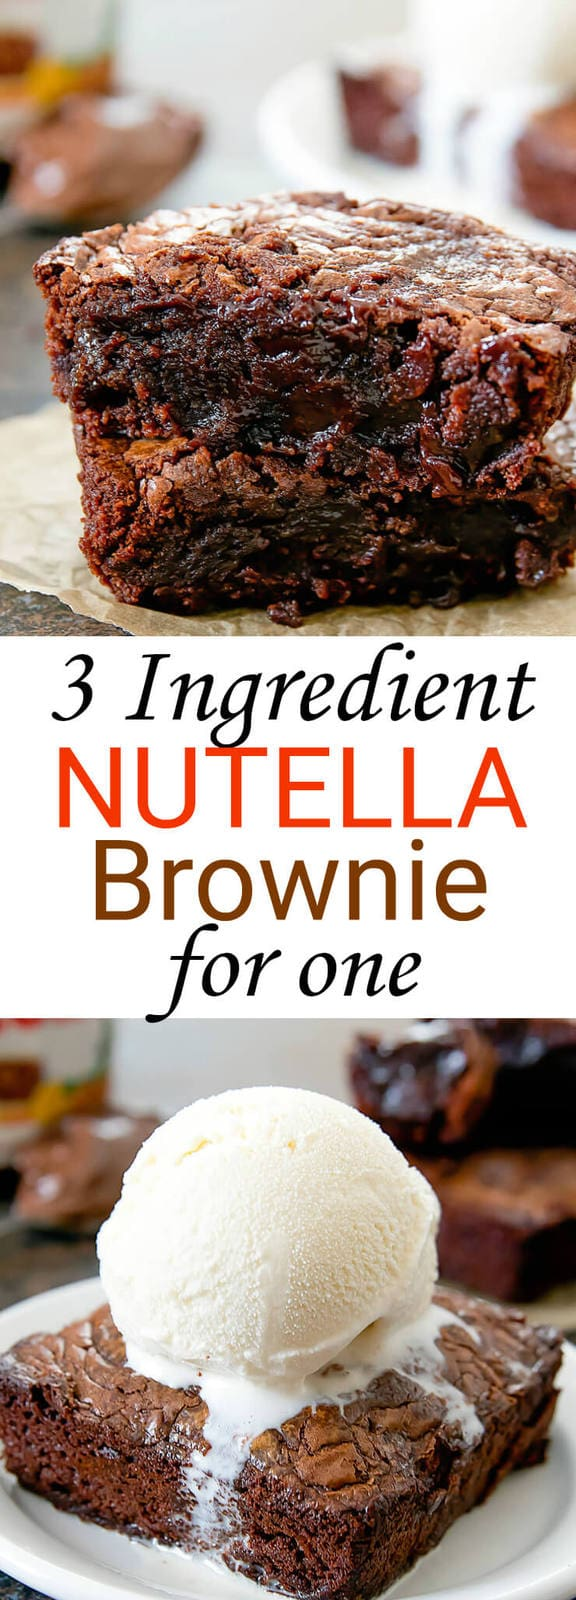 Single Serving 3 Ingredient Nutella Brownie for One. This recipe makes one extra large fudgy brownie that serves one or two people.